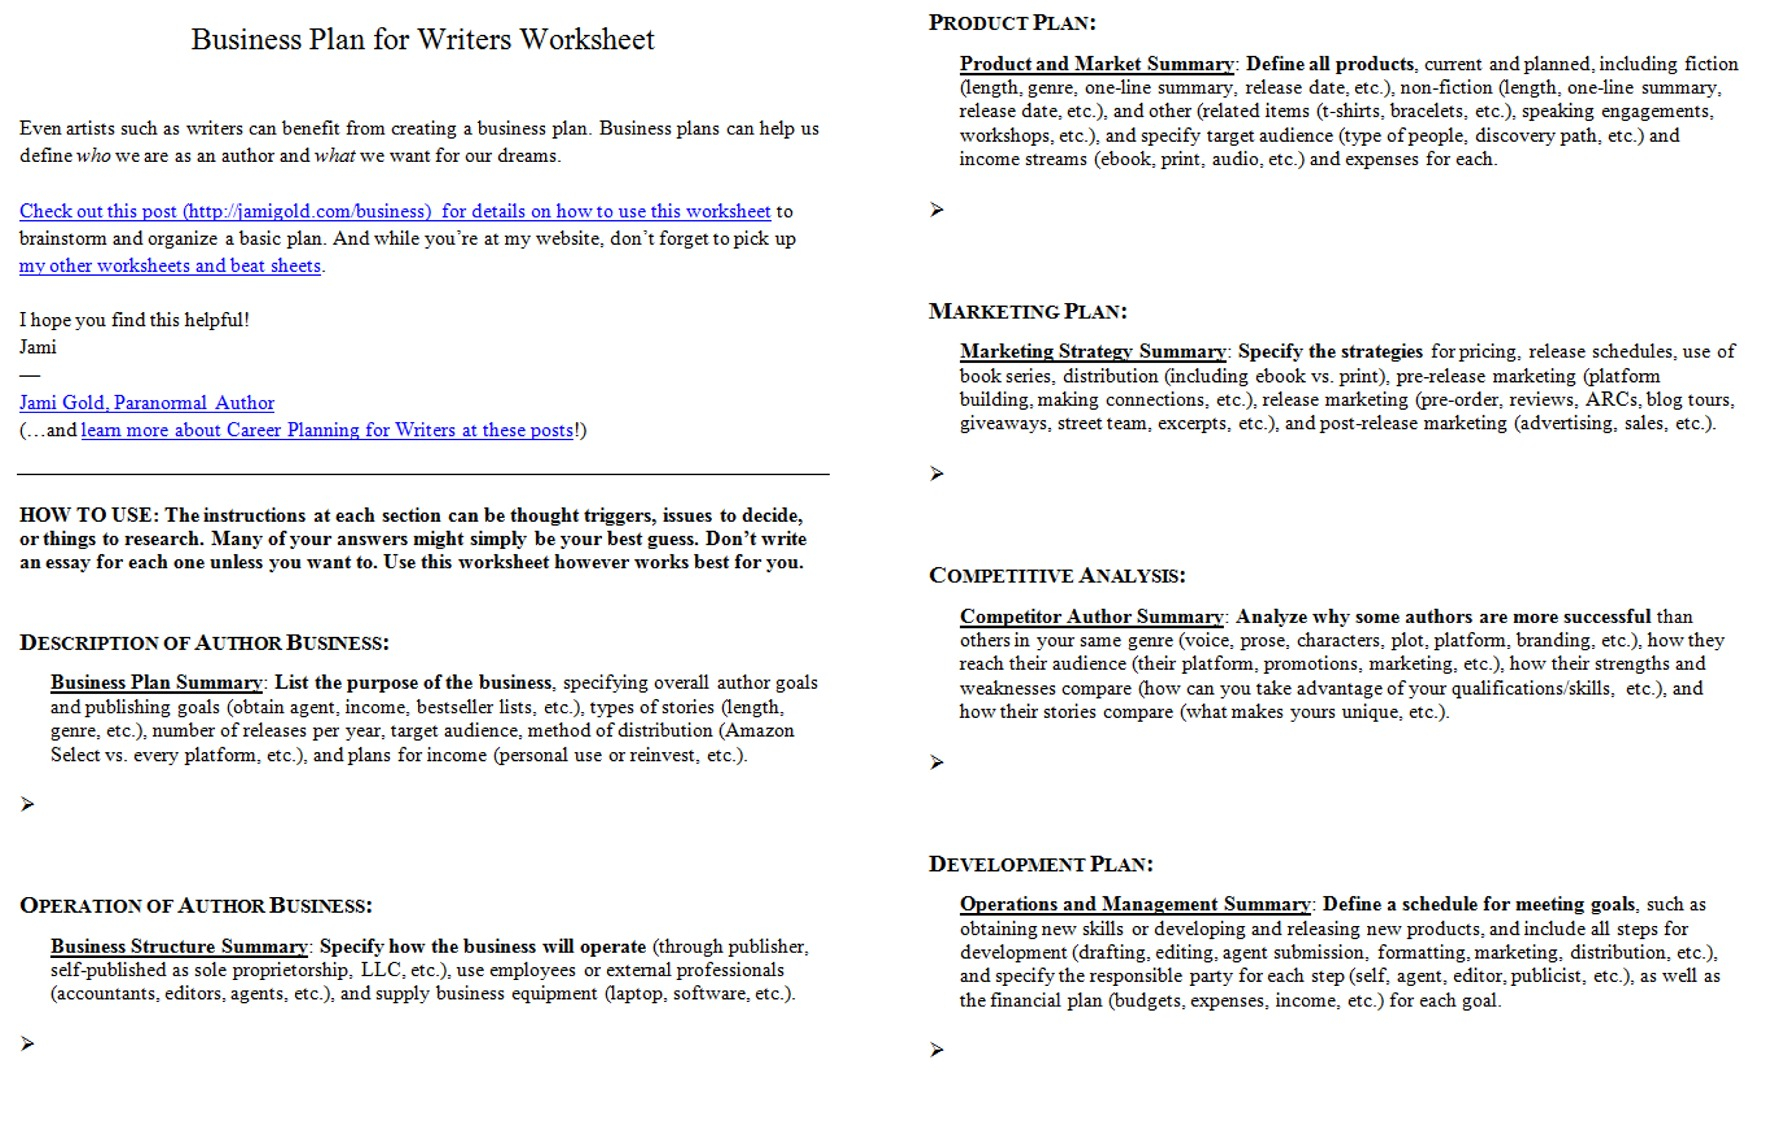 Aldiablosus  Unique Worksheets For Writers  Jami Gold Paranormal Author With Magnificent Screen Shot Of Both Pages Of The Business Plan For Writers Worksheet With Captivating Ict Worksheets Ks Also Vocabulary Synonyms Worksheets In Addition Subtraction With Pictures Worksheet And Measurement Worksheet Grade  As Well As Linguistic Phonics Worksheets Additionally Grade  Fraction Worksheets From Jamigoldcom With Aldiablosus  Magnificent Worksheets For Writers  Jami Gold Paranormal Author With Captivating Screen Shot Of Both Pages Of The Business Plan For Writers Worksheet And Unique Ict Worksheets Ks Also Vocabulary Synonyms Worksheets In Addition Subtraction With Pictures Worksheet From Jamigoldcom